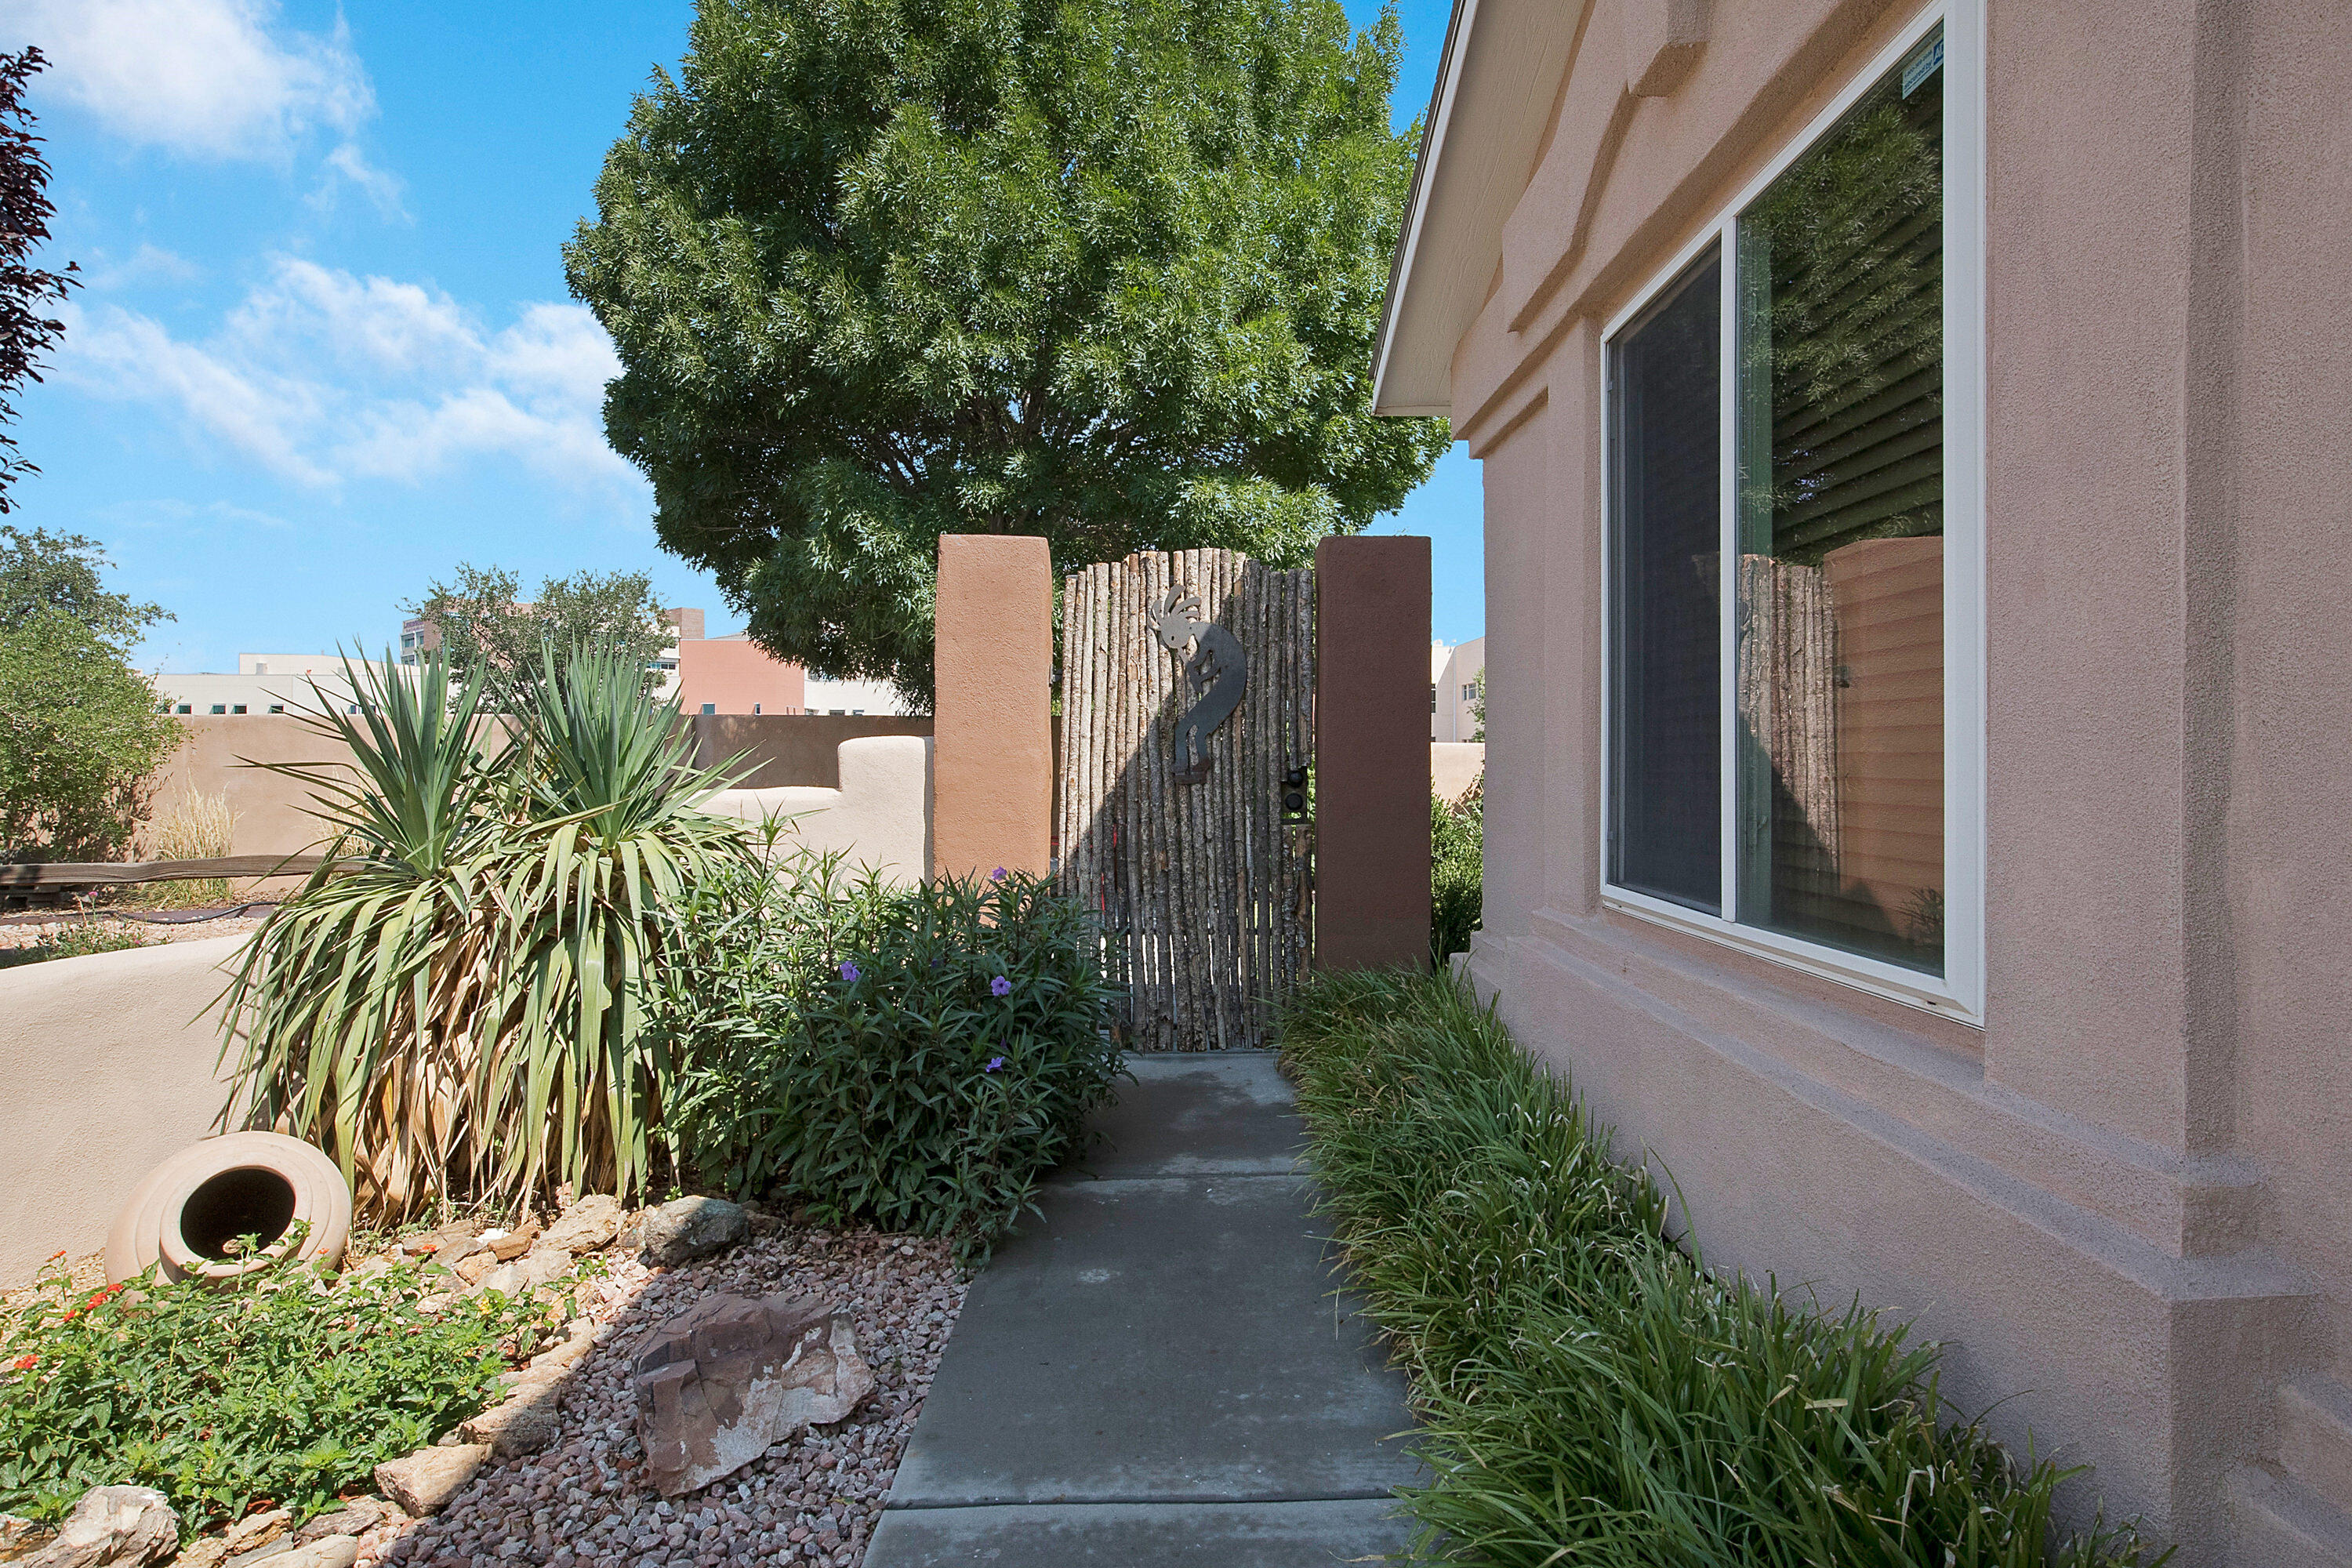 Gorgeous, green, gated courtyard welcomes you to this beautifully updated 3 bedroom home with custom touches throughout. Custom tiled foyer opens to the large living room with elegant stone fireplace and built in entertainment center. Adobe pony wall separation into the family dining room and kitchen. Kitchen features include new kitchen backsplash, granite counter tops and full appliance package. Large, split primary suite with full bath and walk in closet. 30 ft RV pad site with 30 amp hookup and 15 ft. wide secured entry gate. Shade & pine trees to enhance the rural tranquil custom Southwest Patio with built in planter, flagstone patio flooring and gazebo in the backyard. Fully fenced for privacy. Located with all the necessity: schools, hospitals, stores, storage facility.